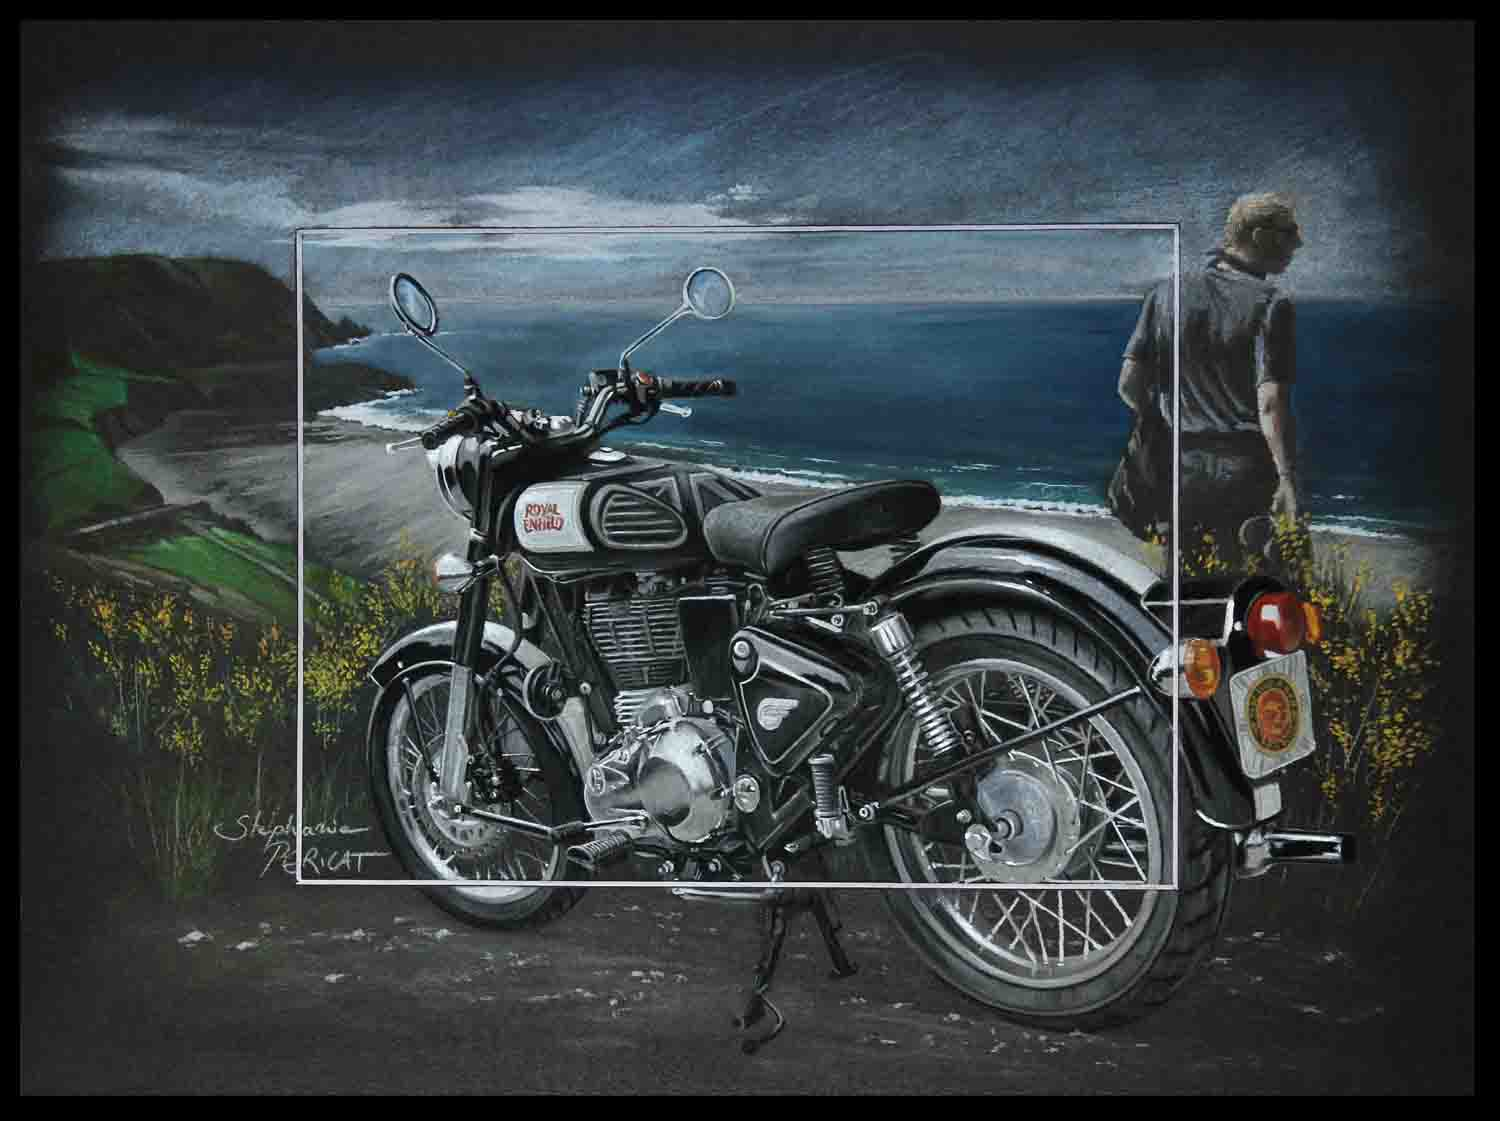 Vintage Riding (royal enfield classic) - 30x40cm